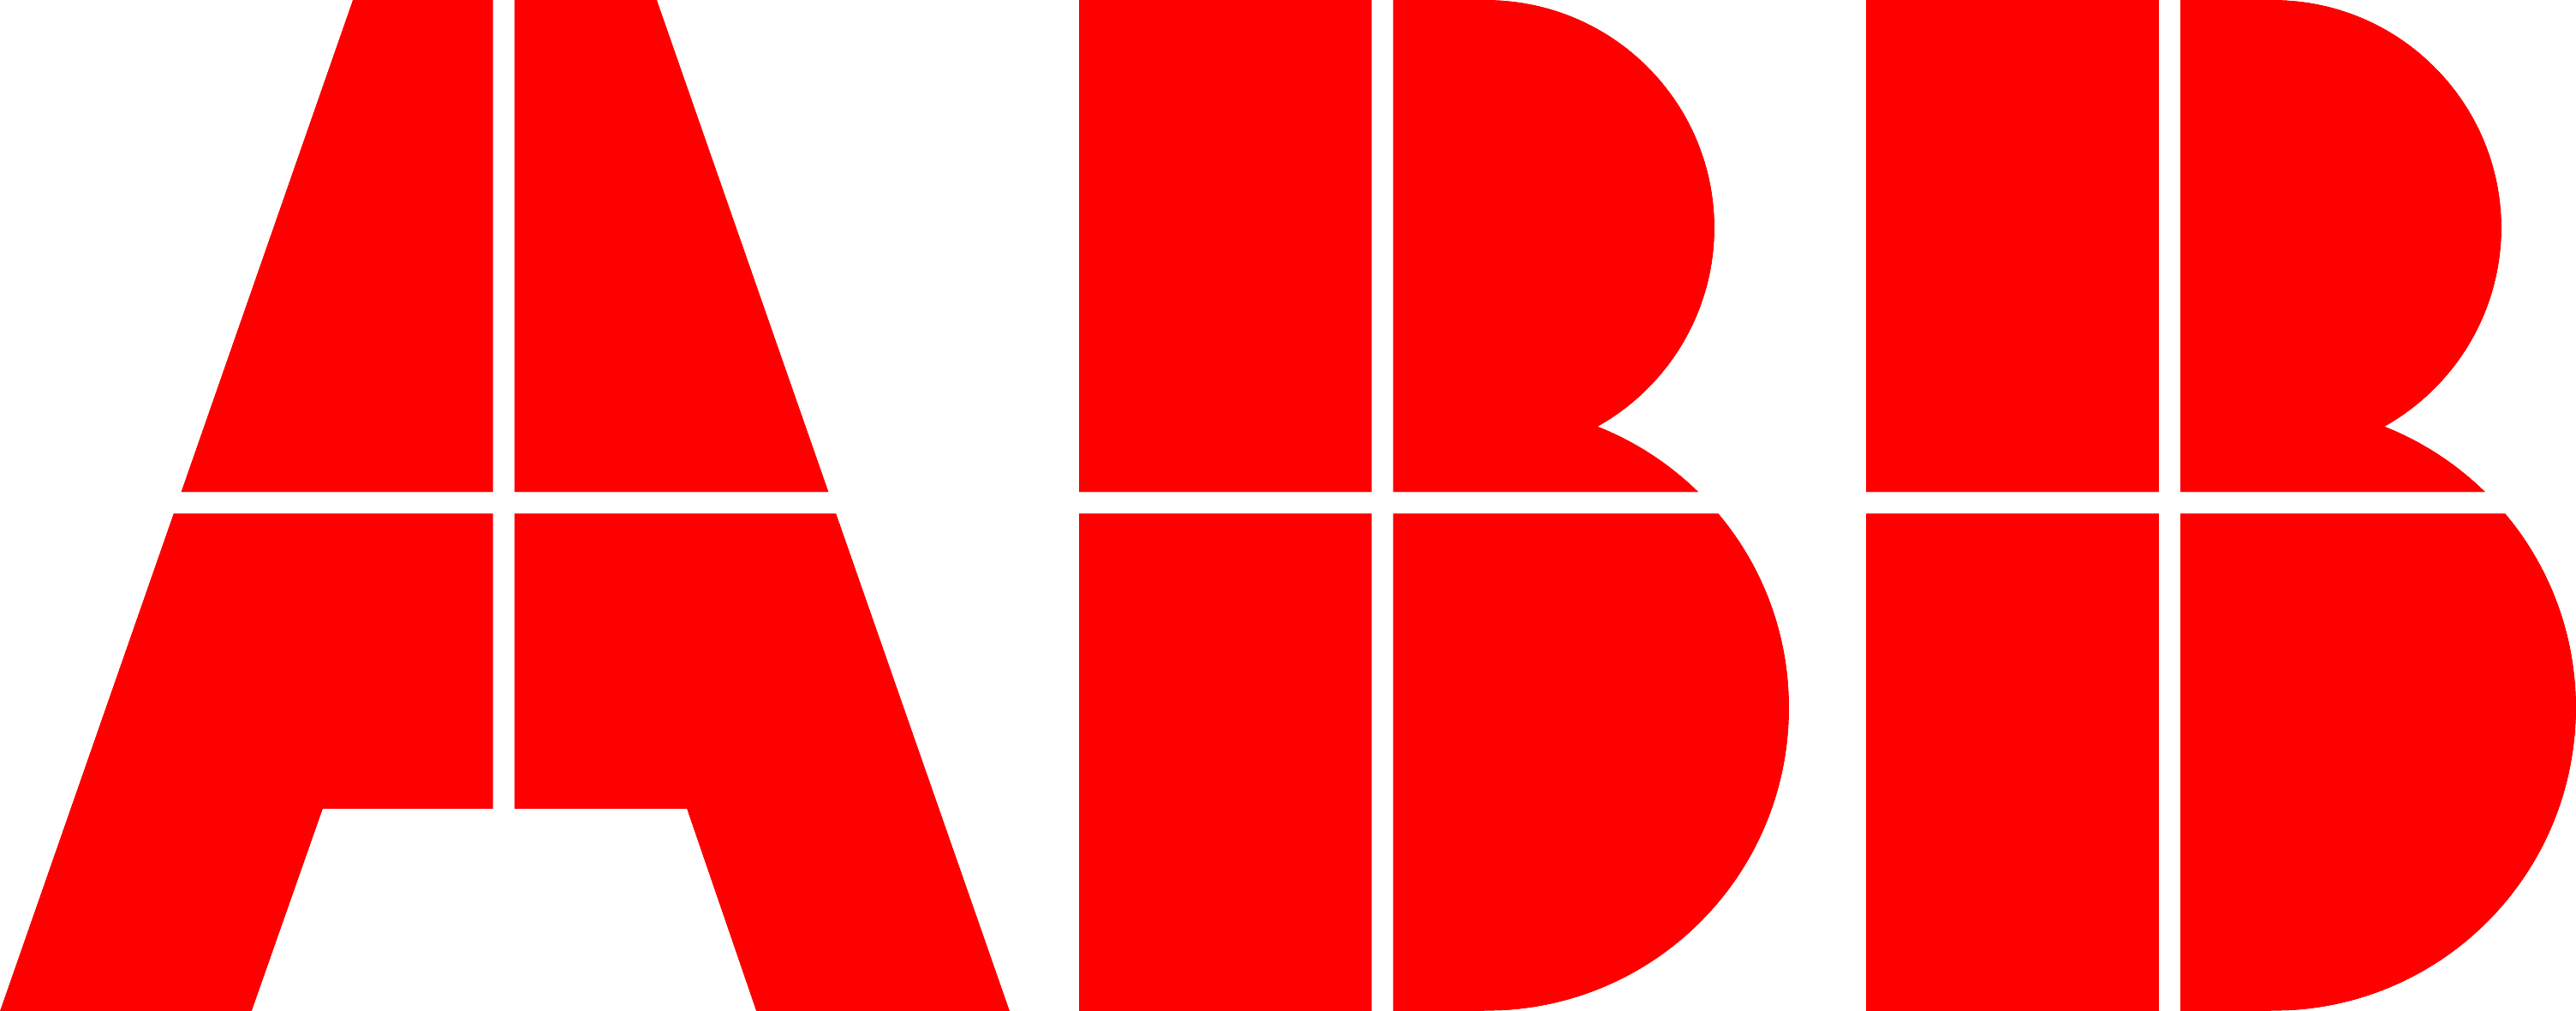 Automation Bespoke Machines ABB